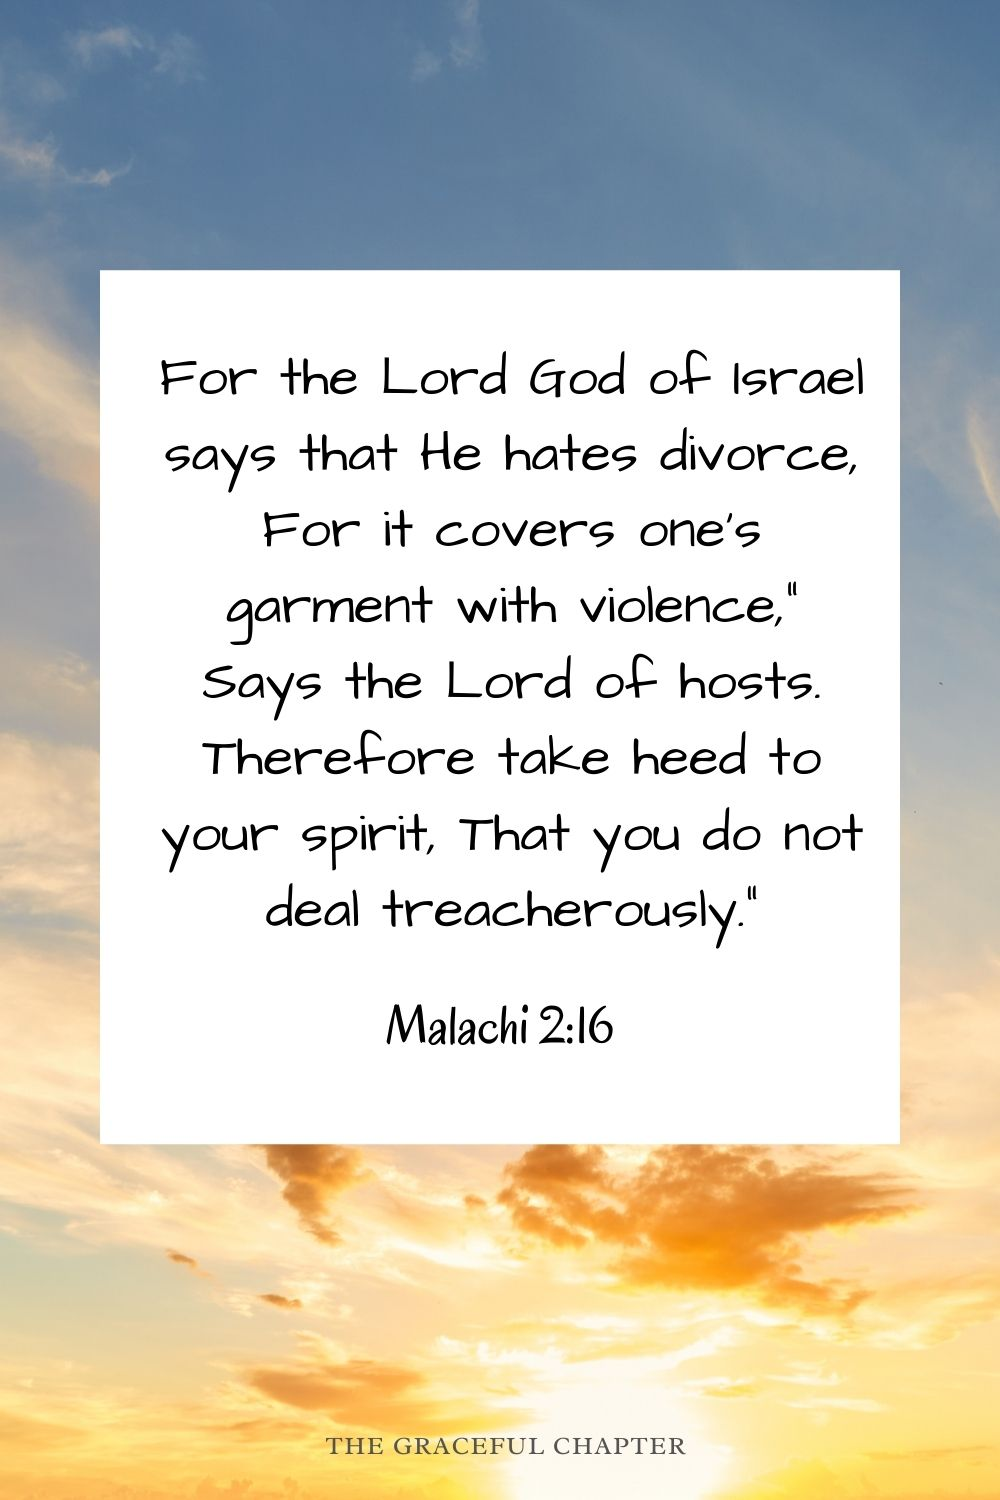 """For the Lord God of Israel says that He hates divorce, For it covers one's garment with violence,"""" Says the Lord of hosts. Therefore take heed to your spirit, That you do not deal treacherously."""" Malachi 2:16"""